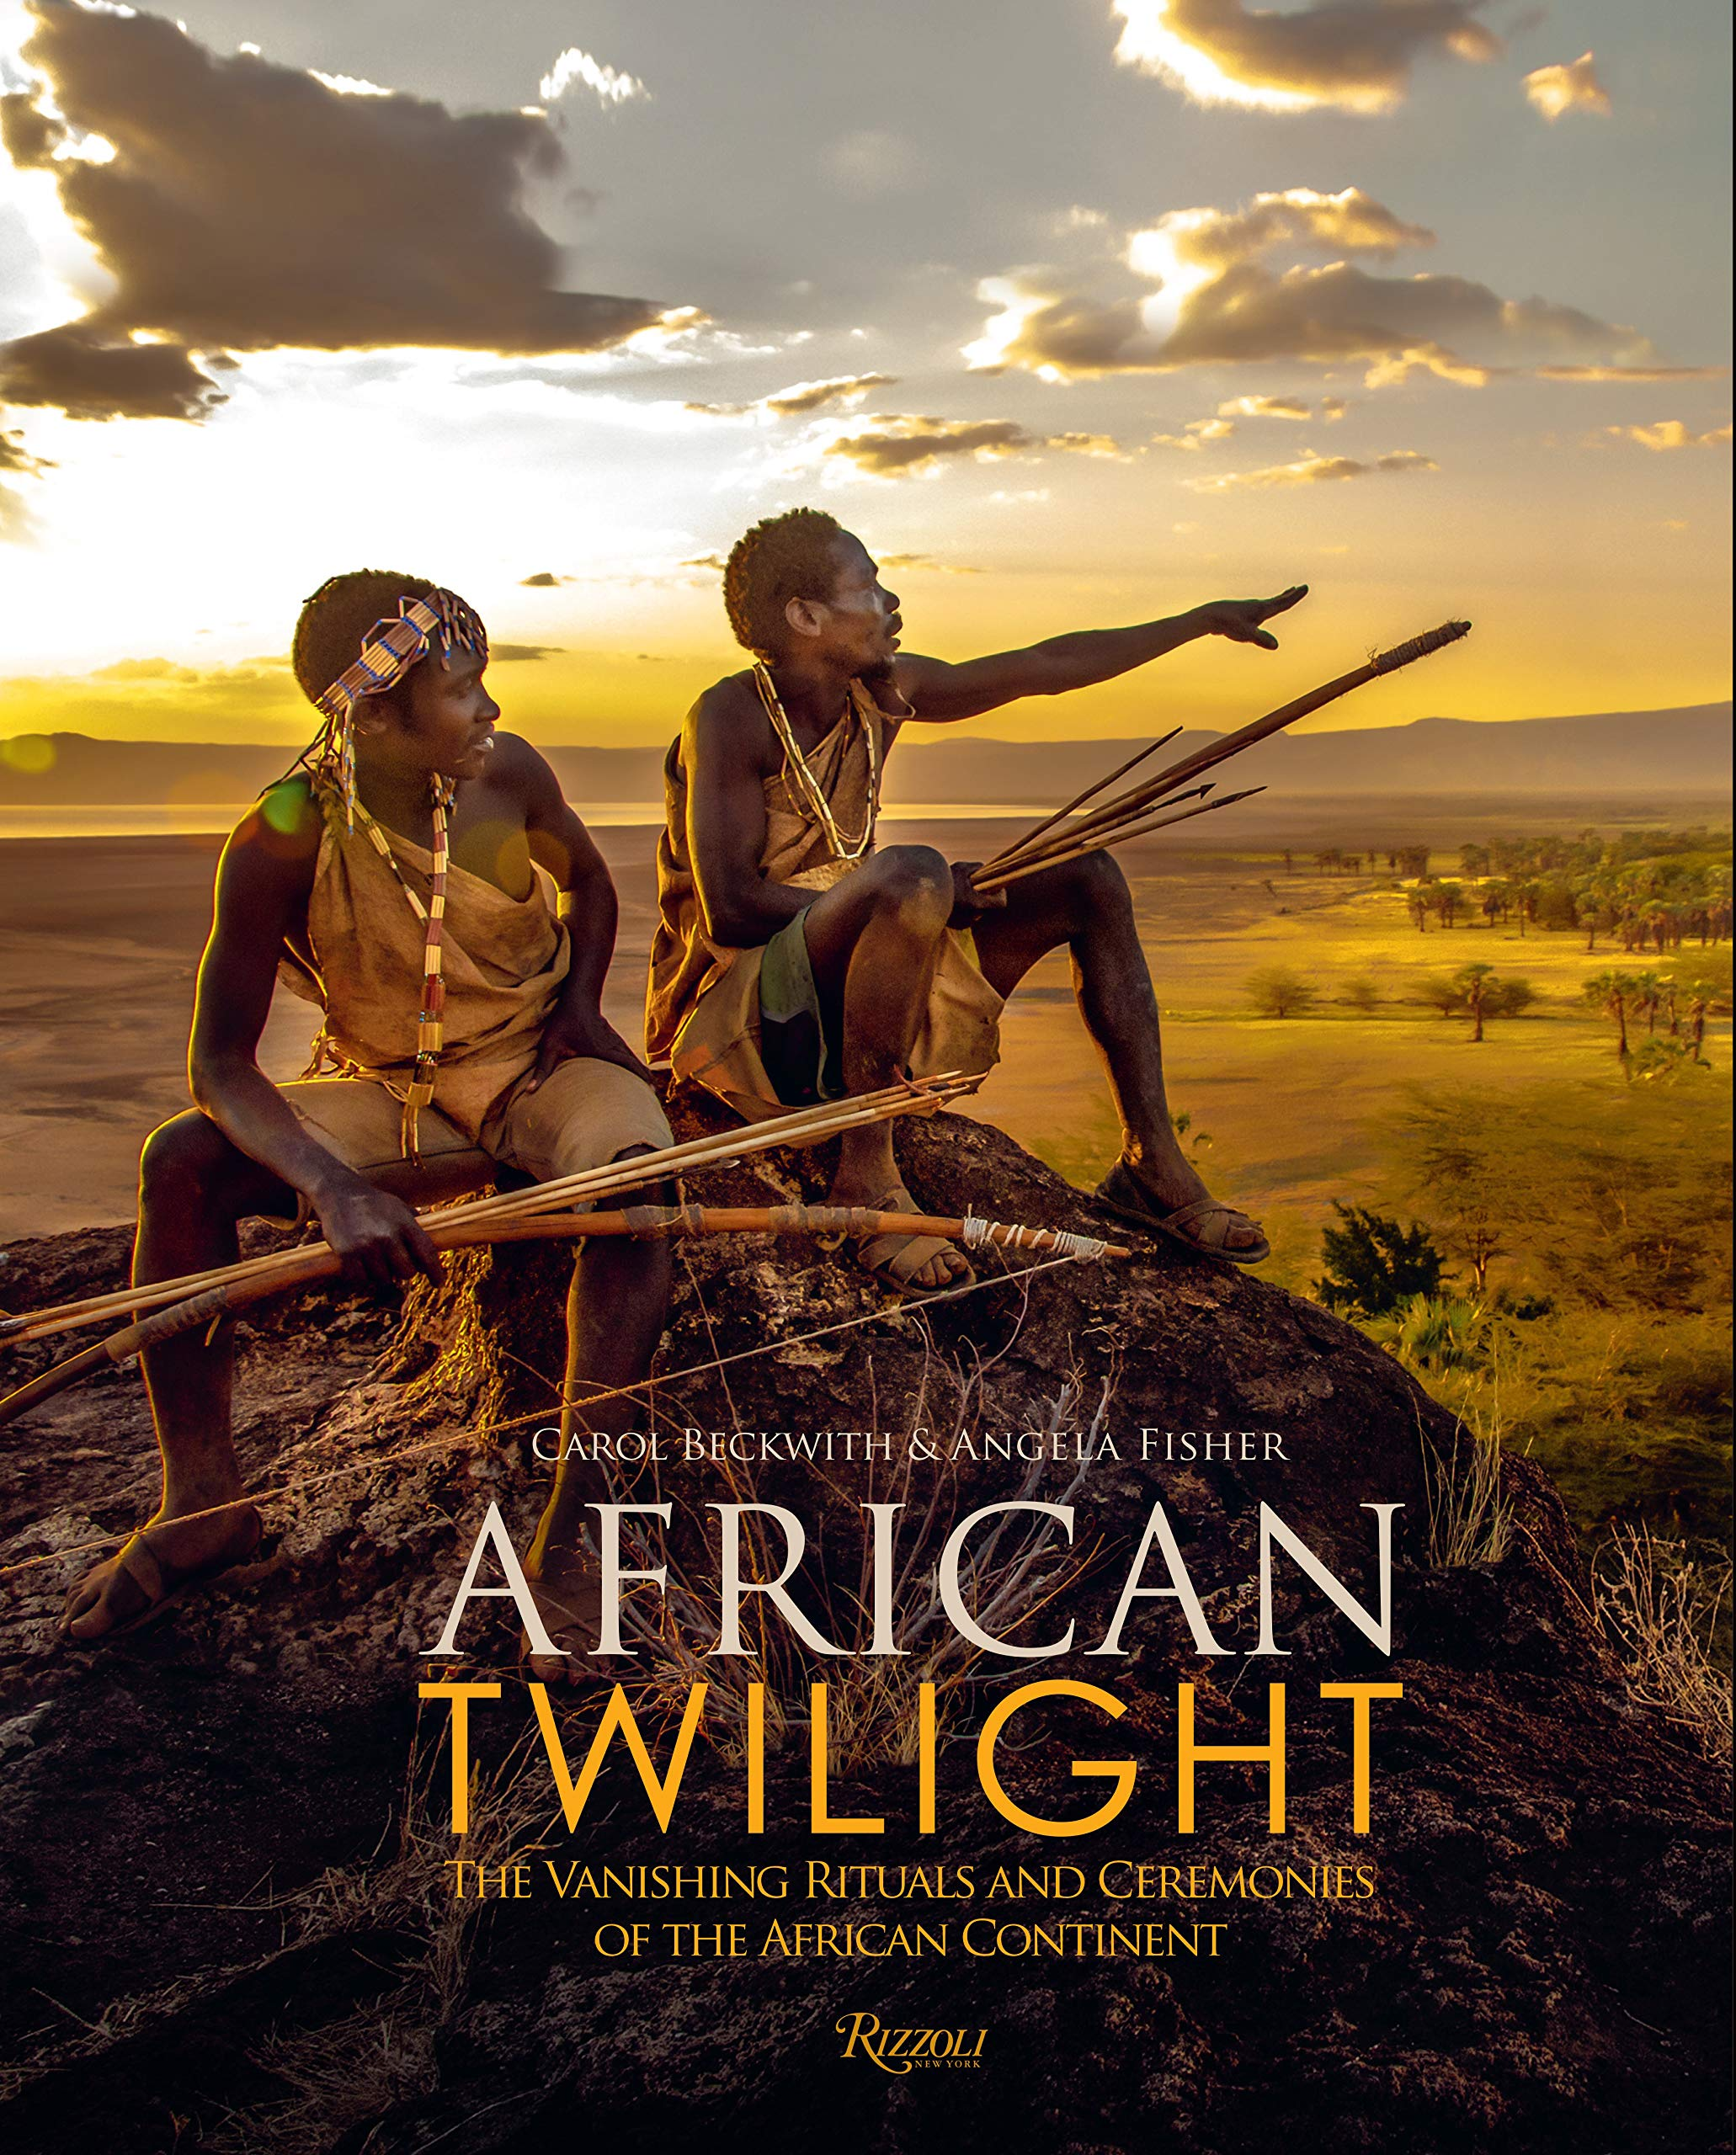 Image result for African Twilight: The Vanishing Rituals and Ceremonies of the African Continent by Carol Beckwith and Angela Fisher